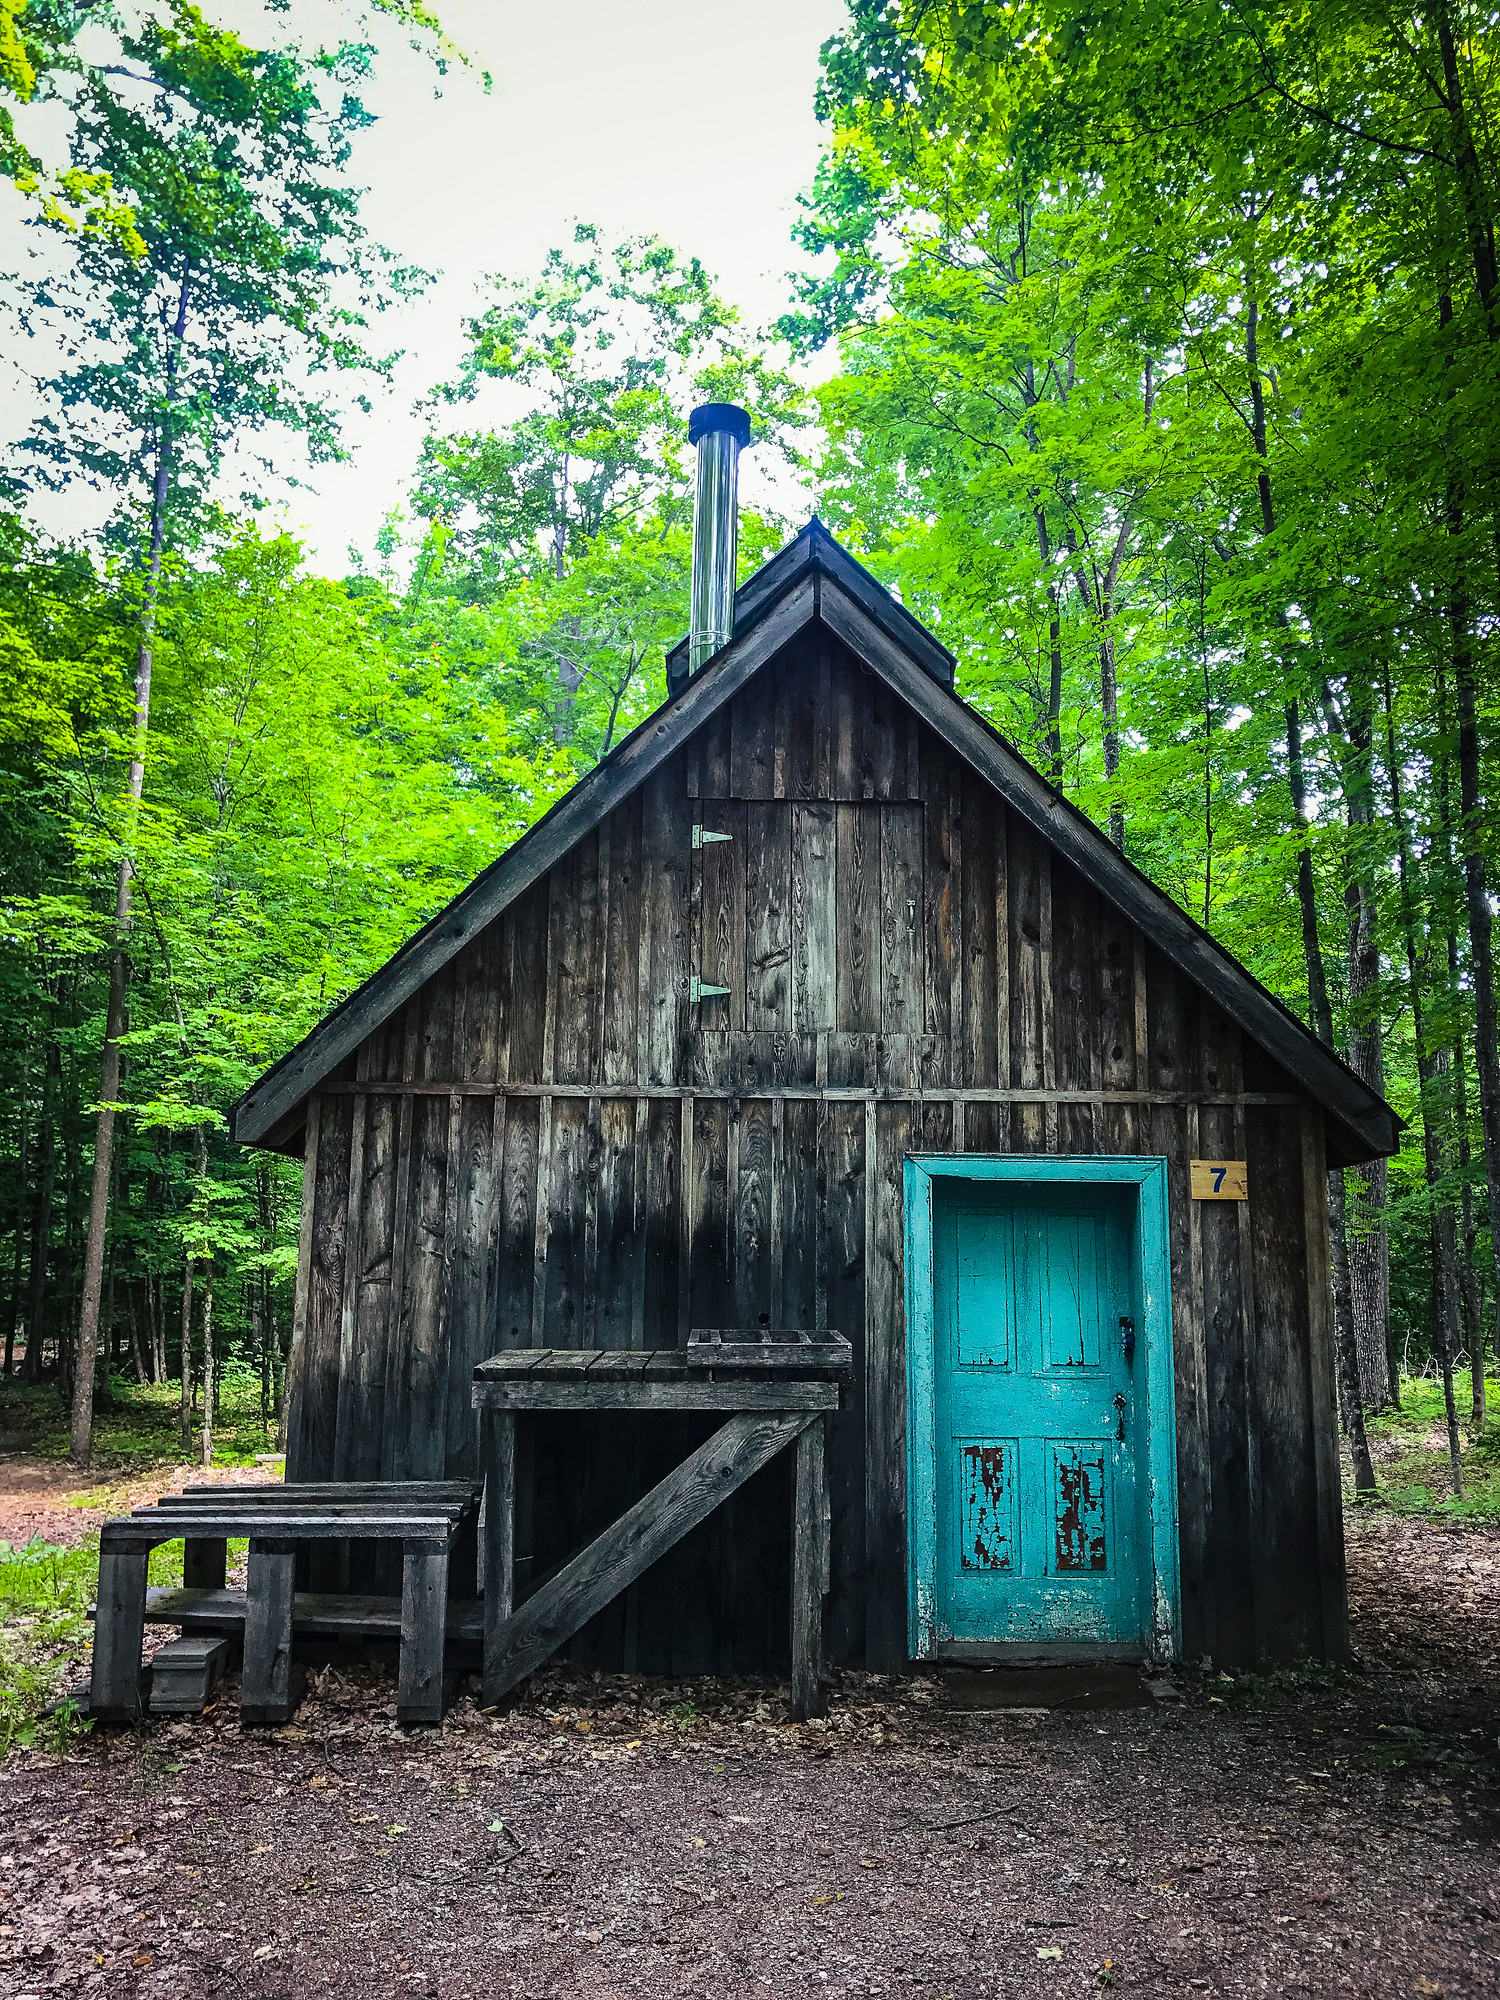 You can make maple syrup in this sugar shack with the Ottawa Valley Maple Adventures and you can do it all year round.